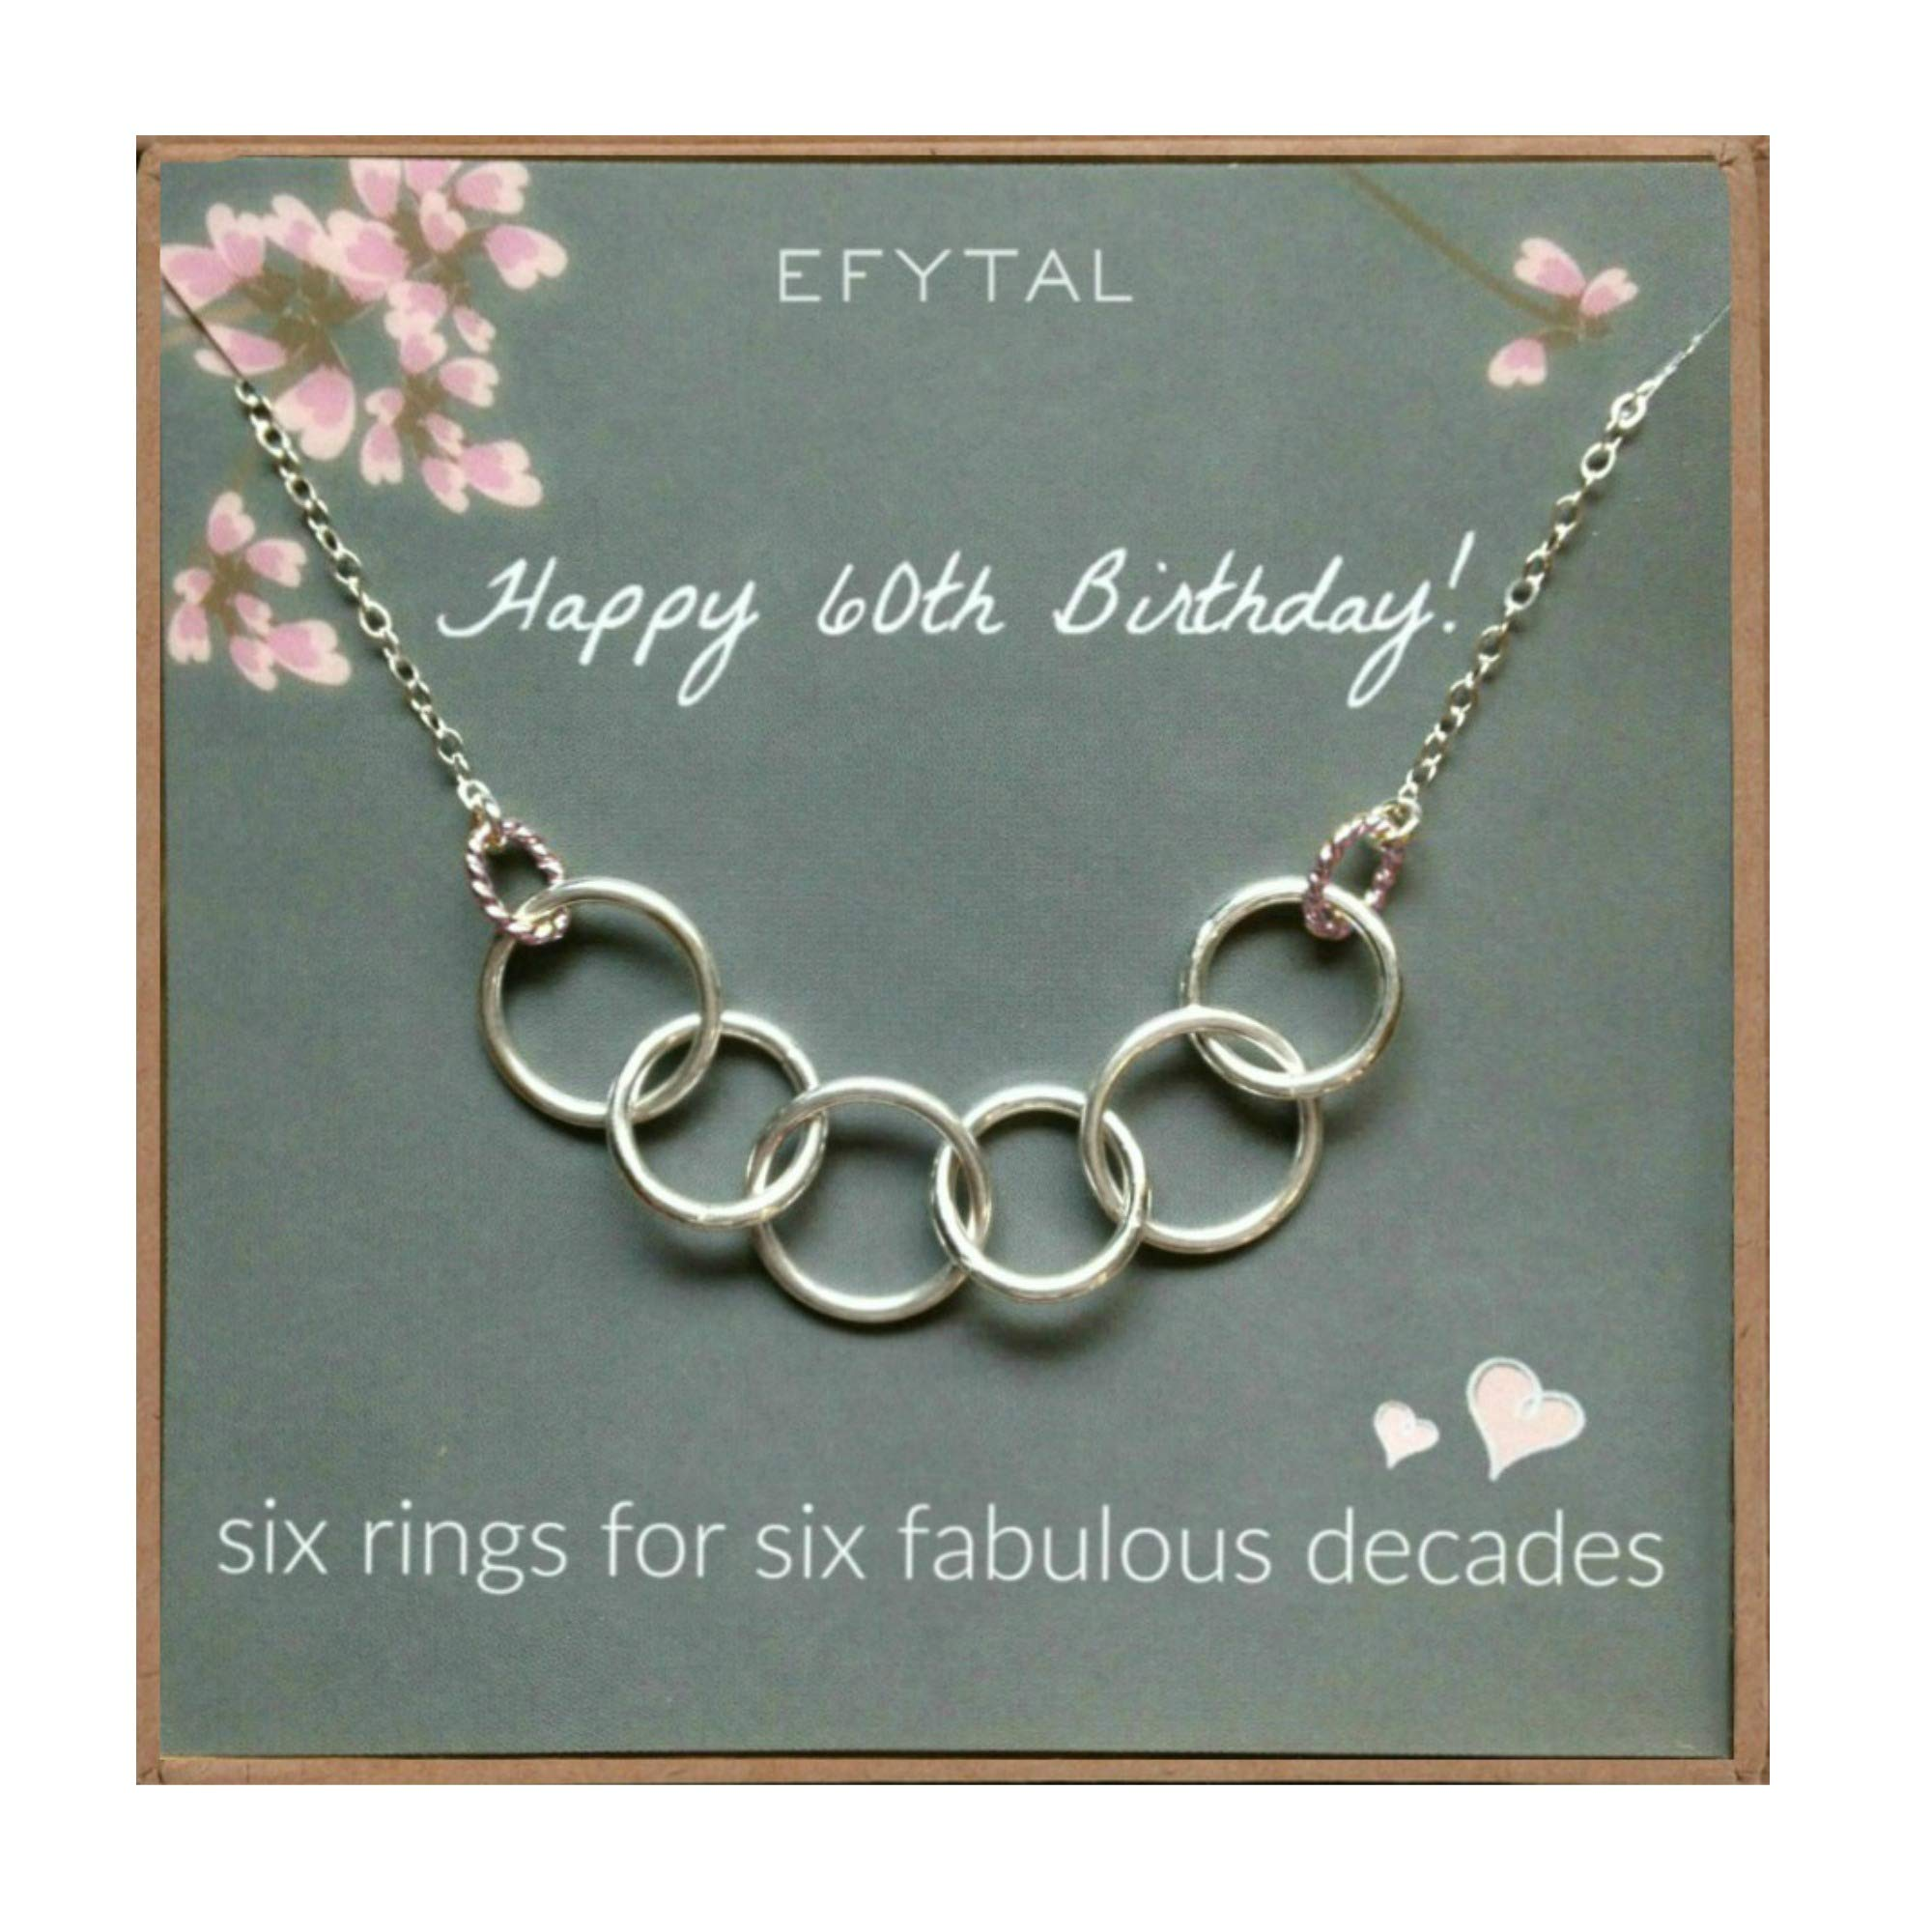 EFYTAL Happy 60th Birthday Gifts for Women Necklace, Sterling Silver 6 Rings six Decades Necklaces Gift Ideas by EFYTAL